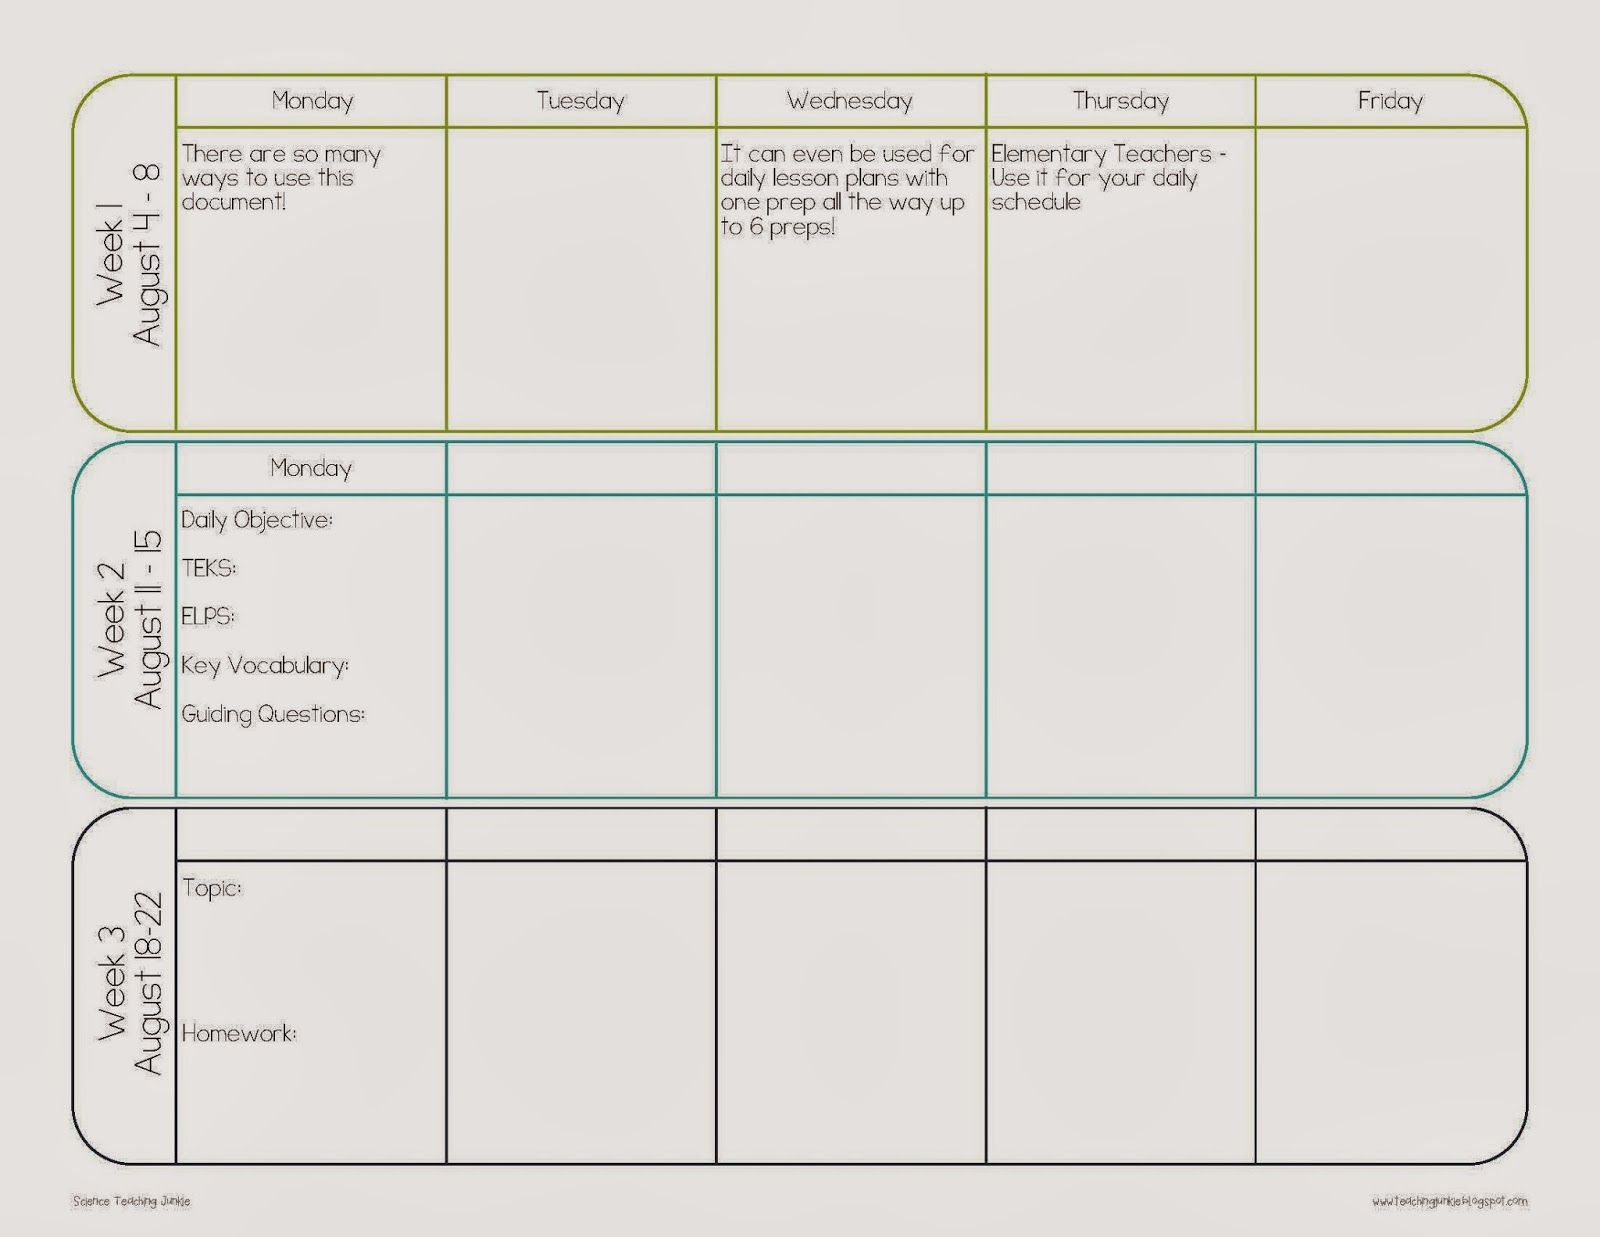 pacing calendar template for teachers April.onthemarch.co